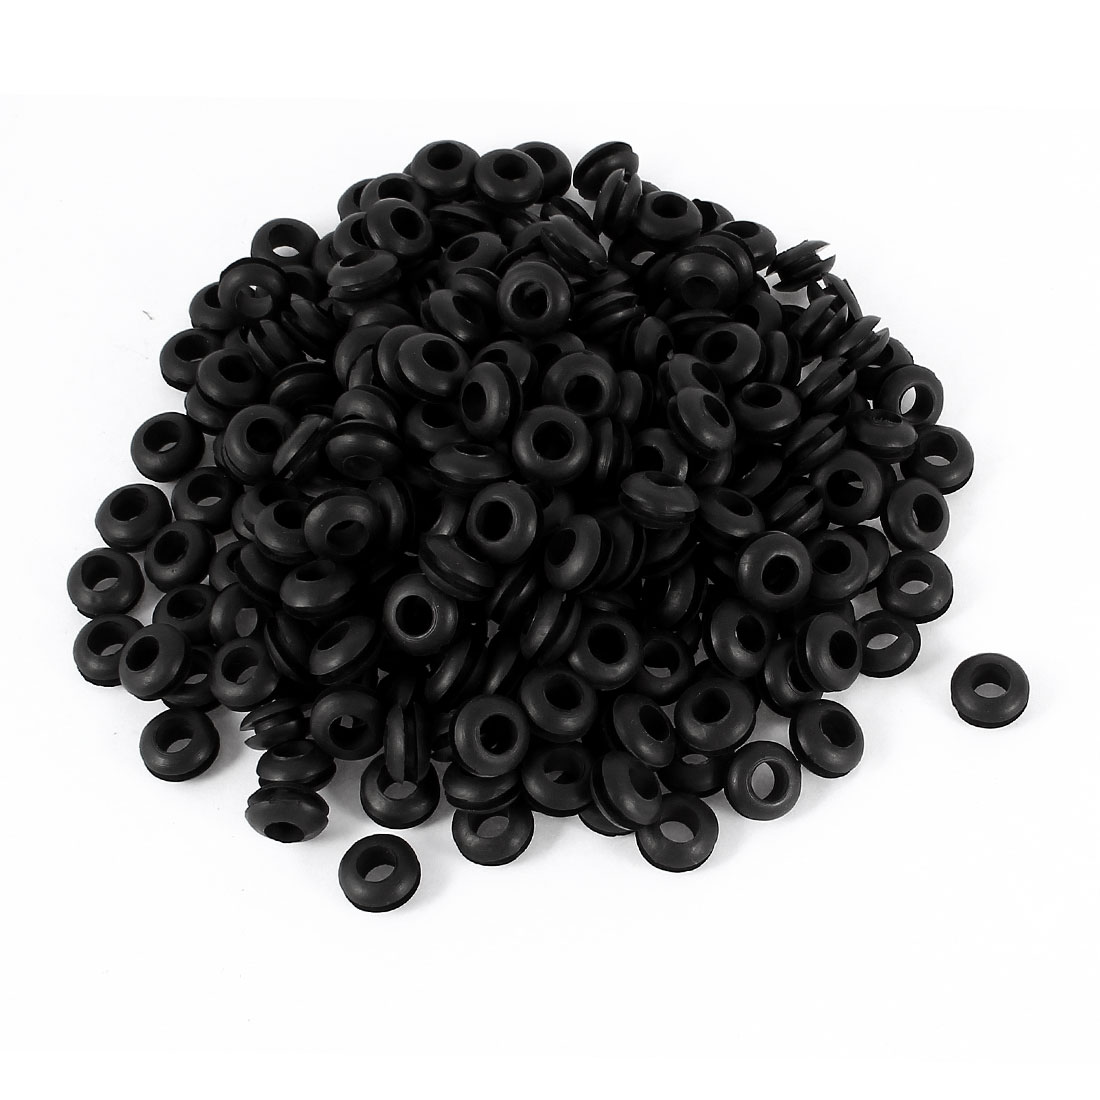 300 PCS 6mm x 12mm Double Sides Black Rubber Wiring Grommets Gasket Ring Cble Protector